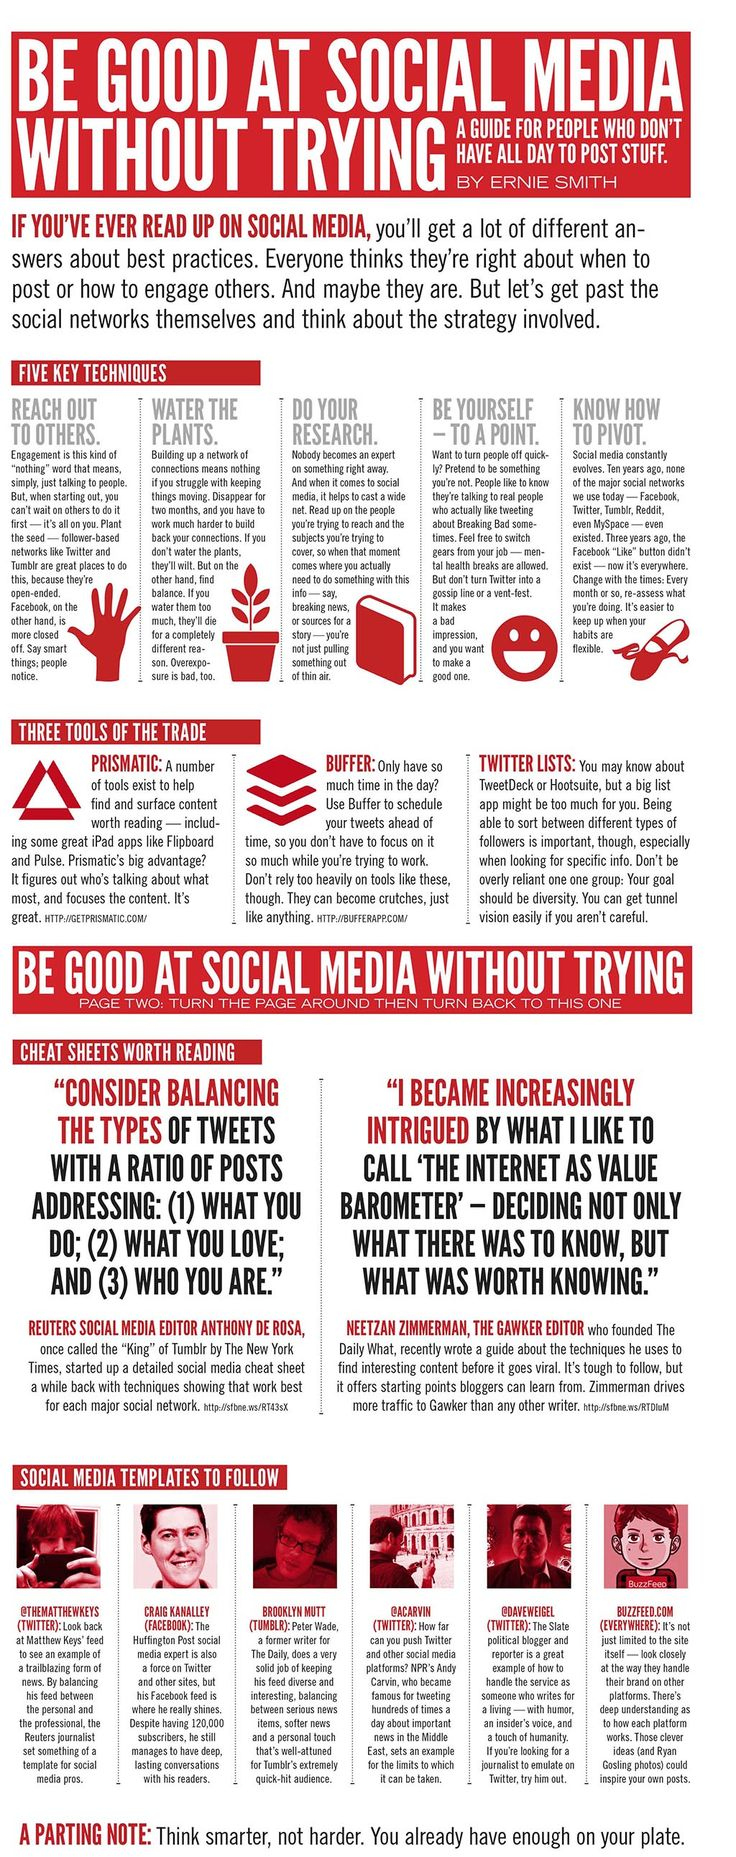 The Busy Person's Guide To Social Media - This may very well be the best guide to social media I've ever seen. It's an organized and genius take on how to best harness the various social networks without spending your entire day doing so.